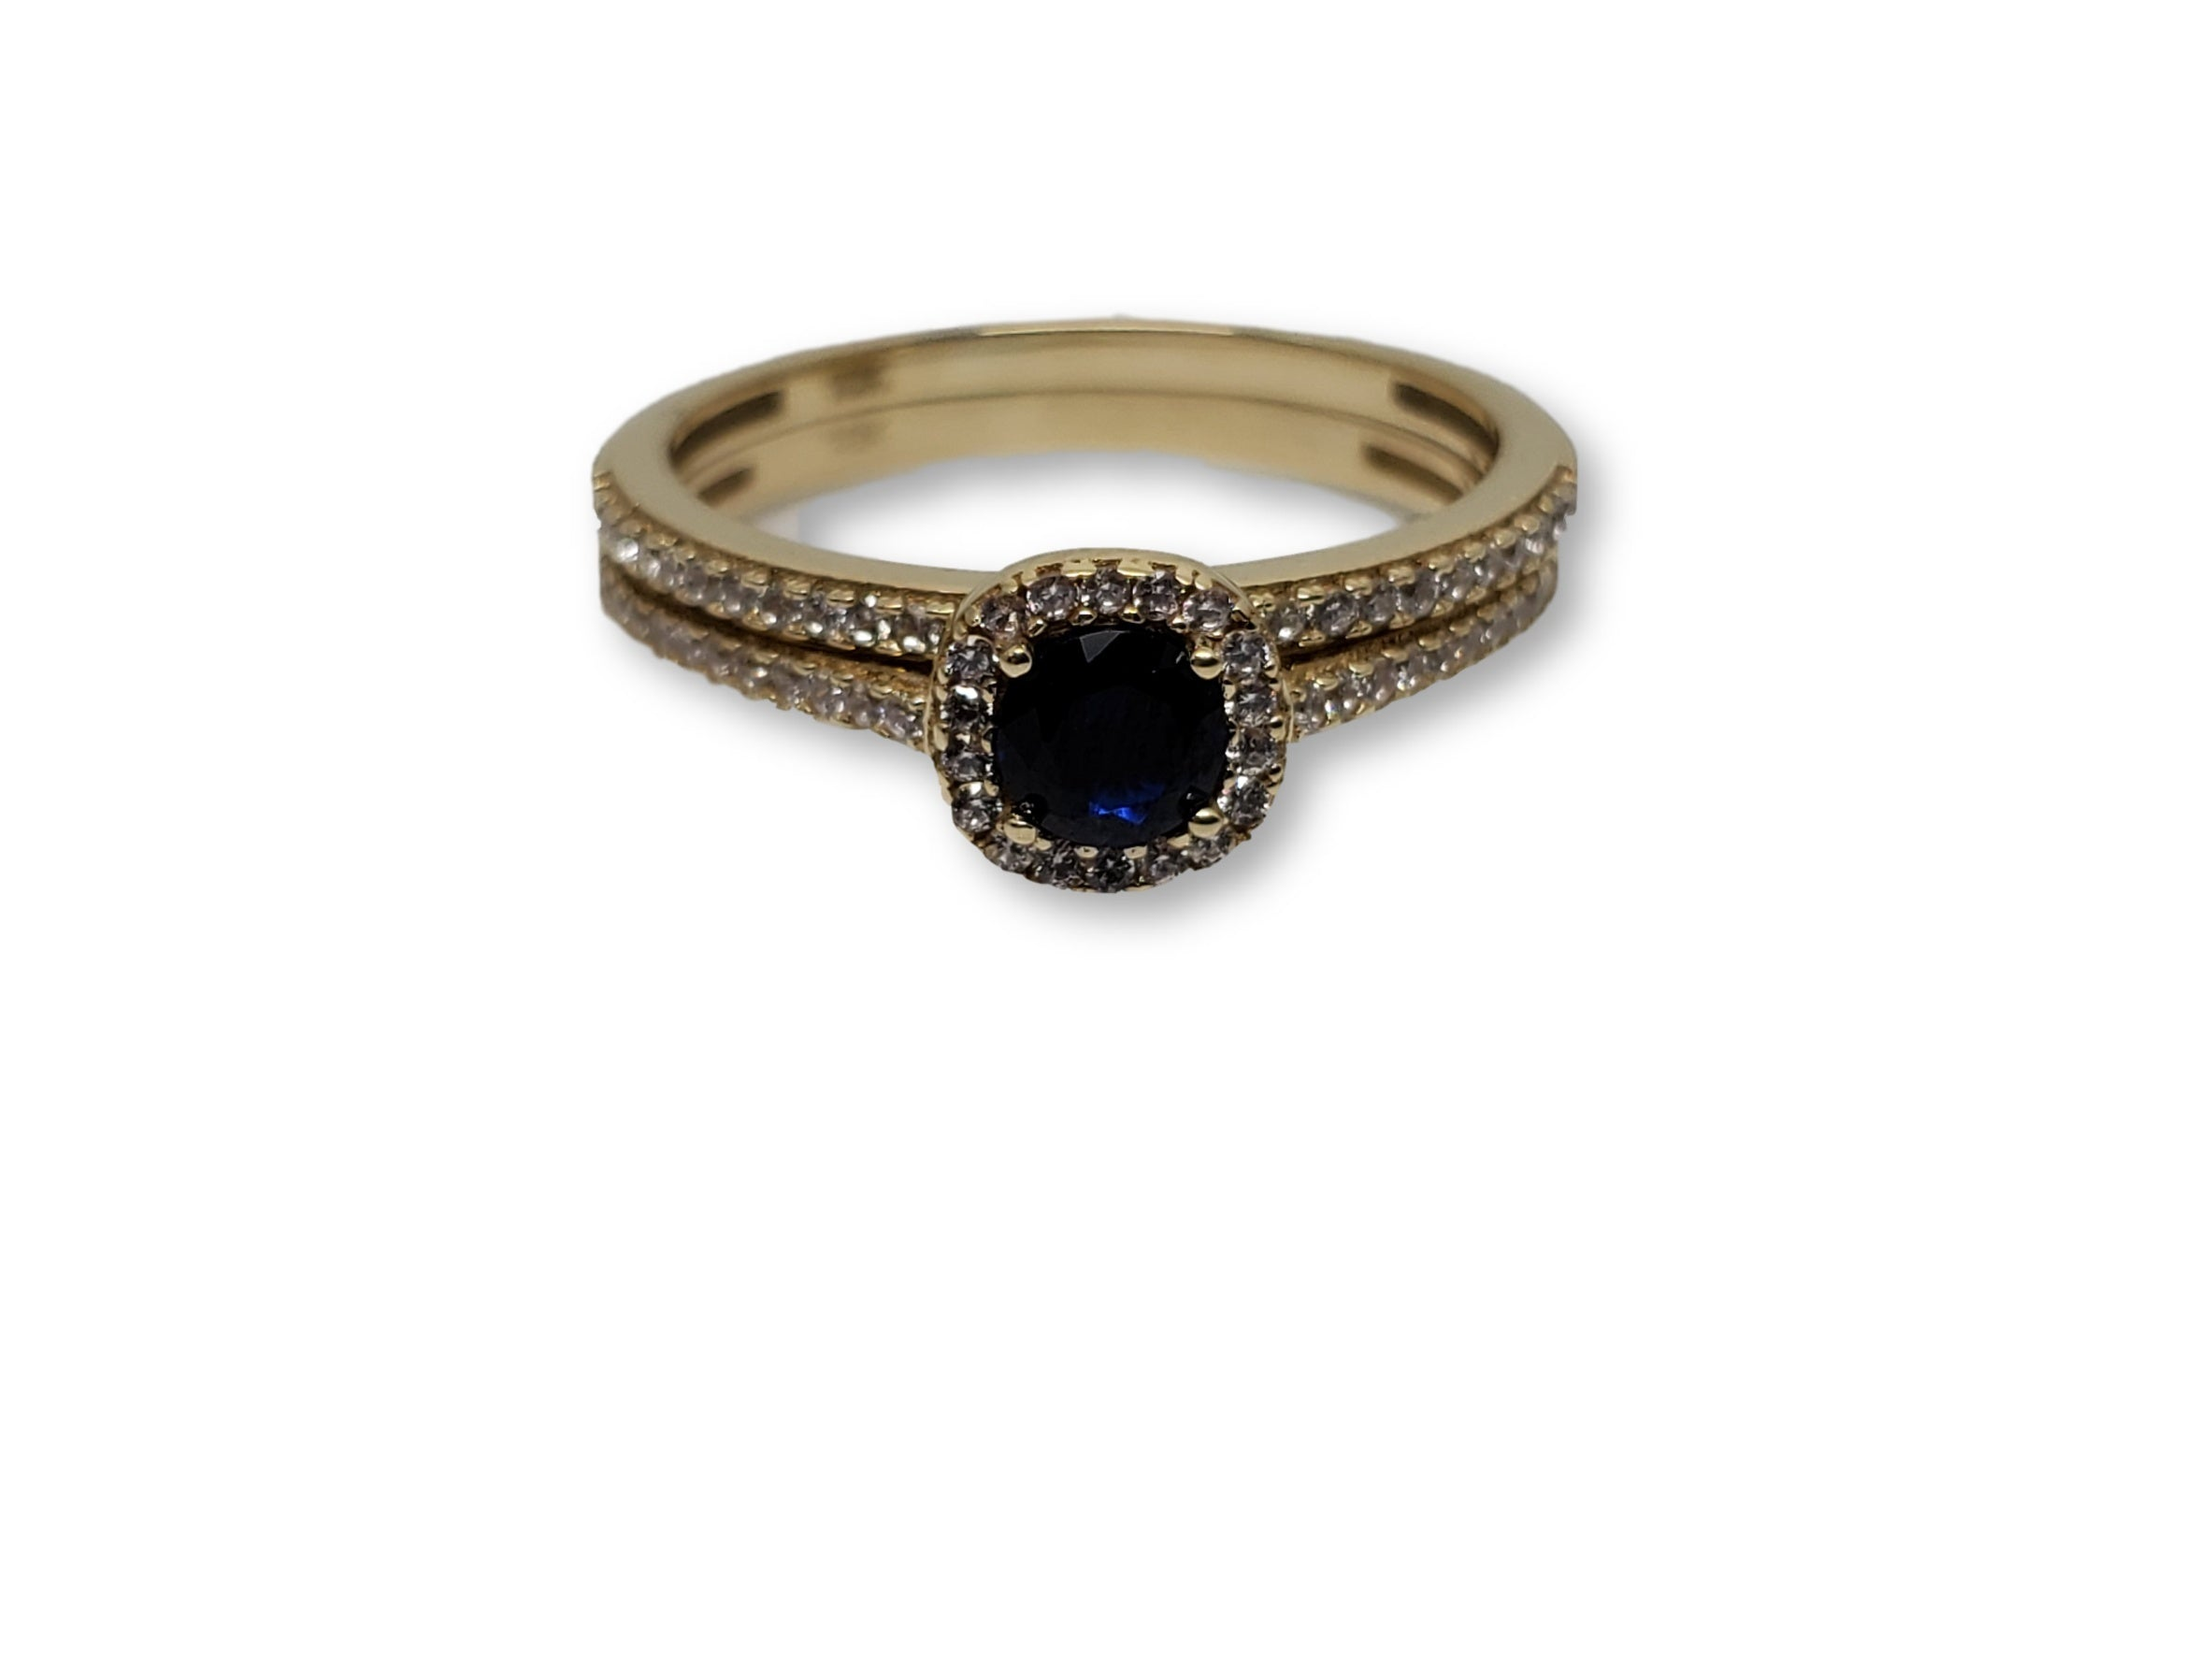 Bague ronde bleu en or 10k model 2020